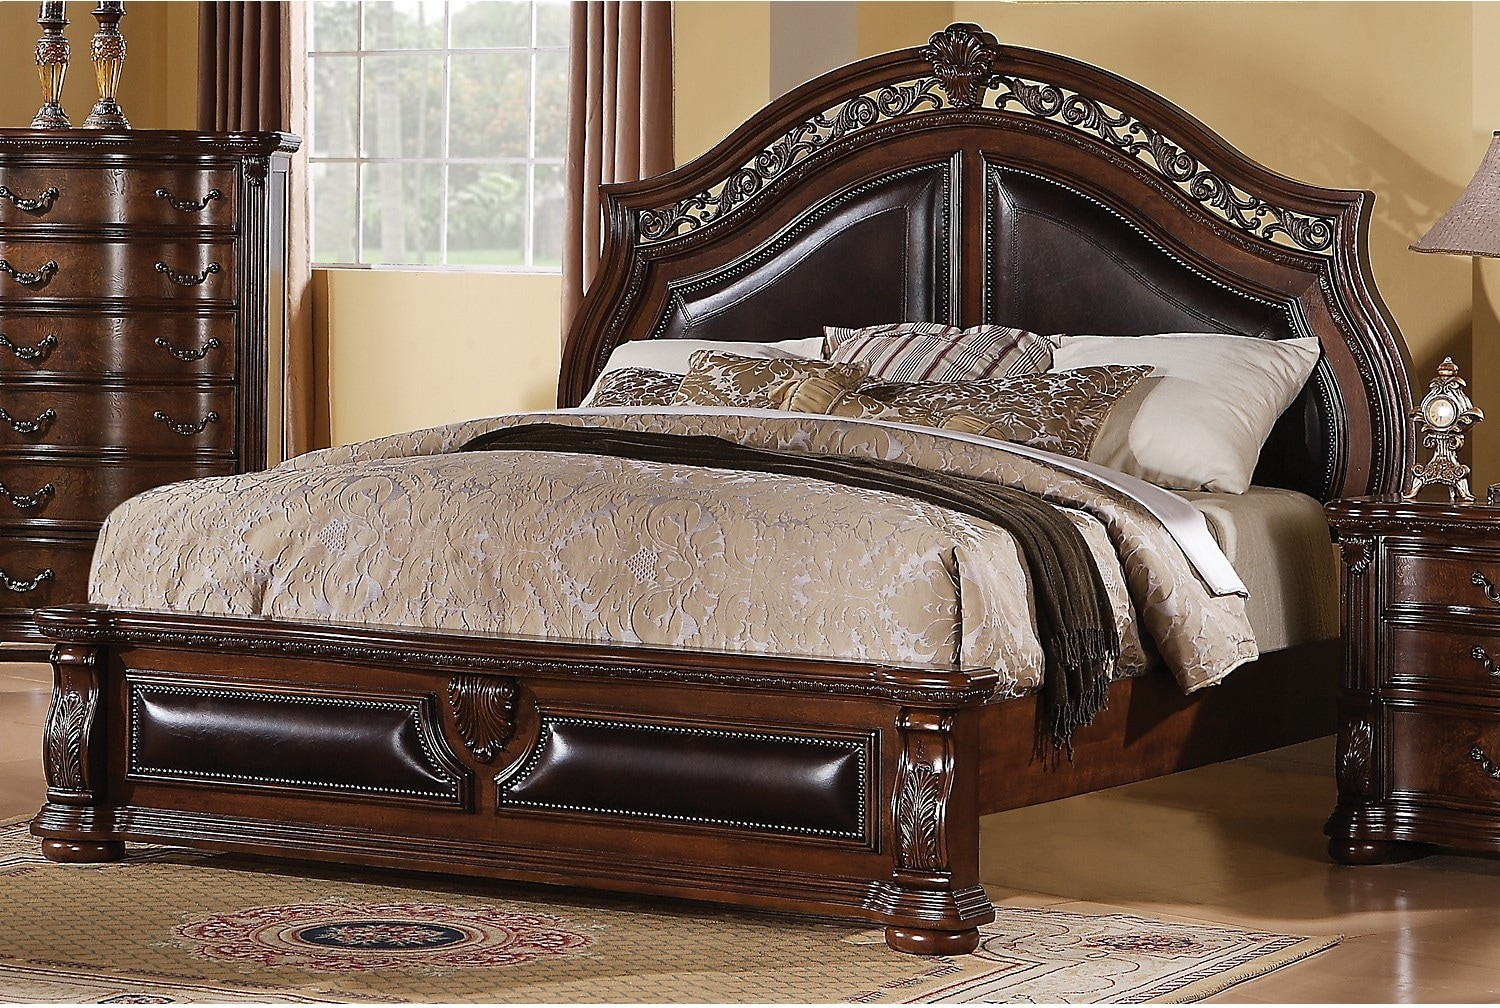 Furniture And Mattress Warehouse King Morocco King Bed The Brick